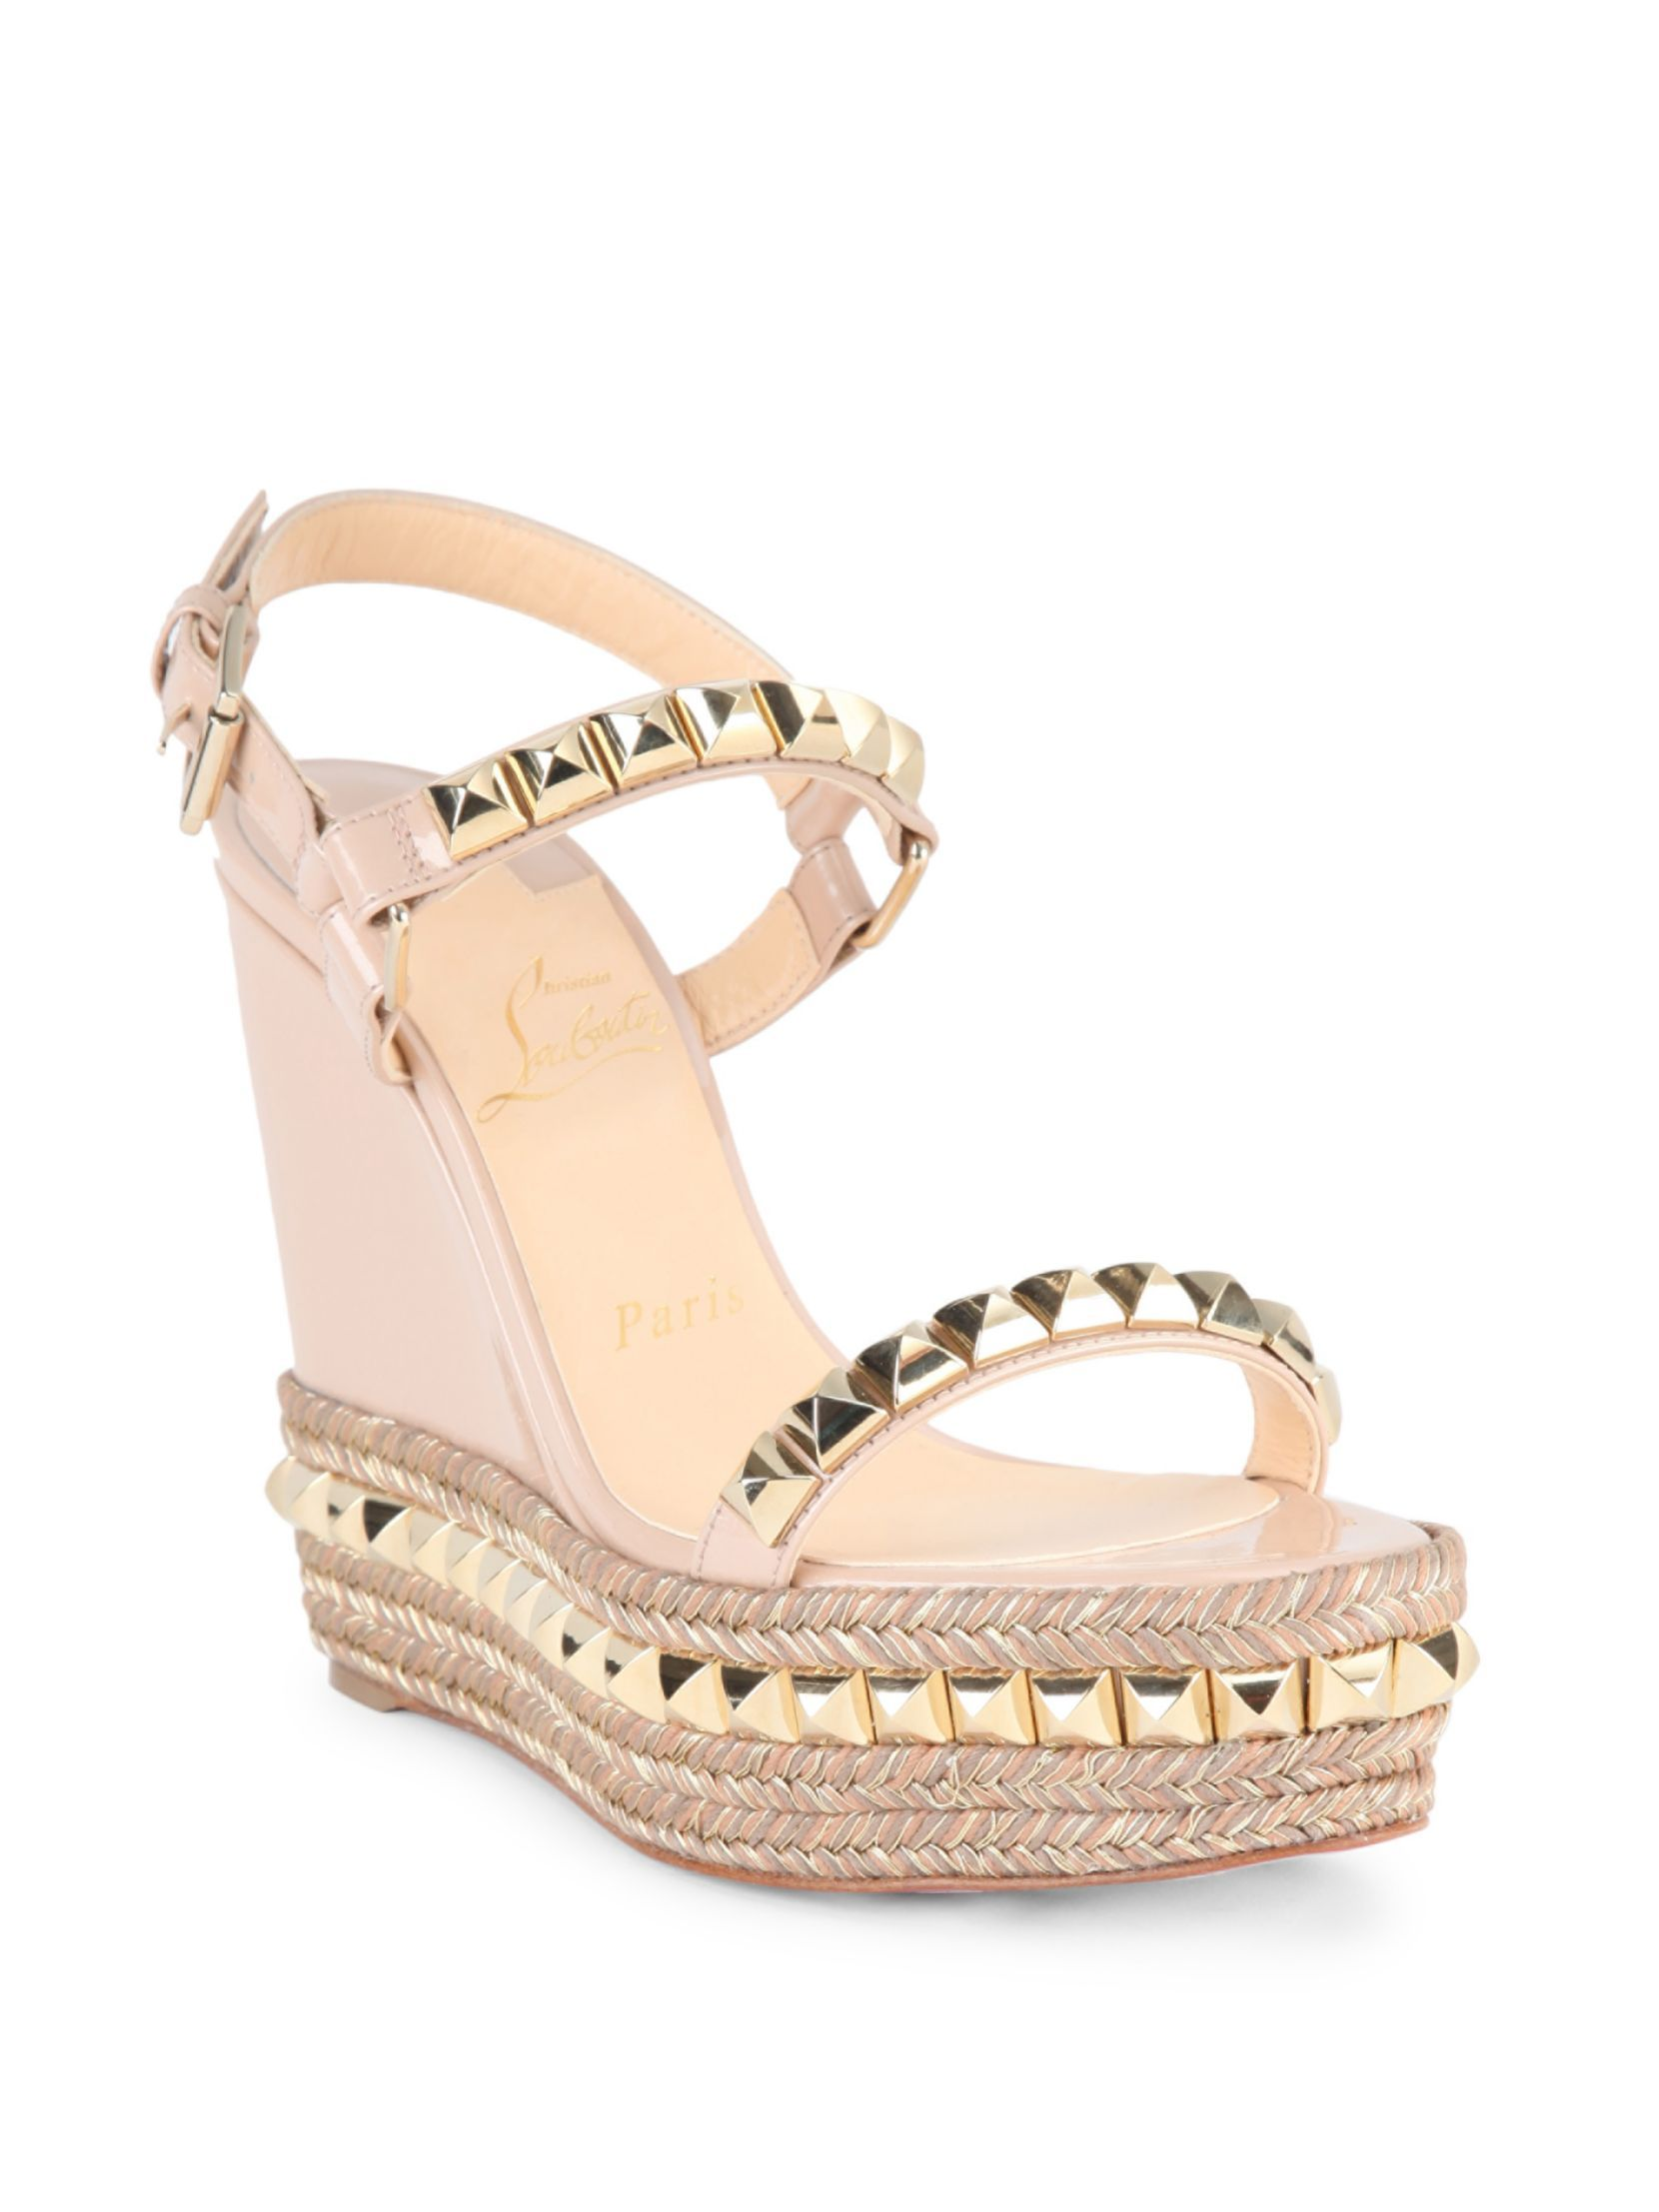 Christian Louboutin Cataclou 120 Studded Patent Leather Espadrille Wedge  Sandals